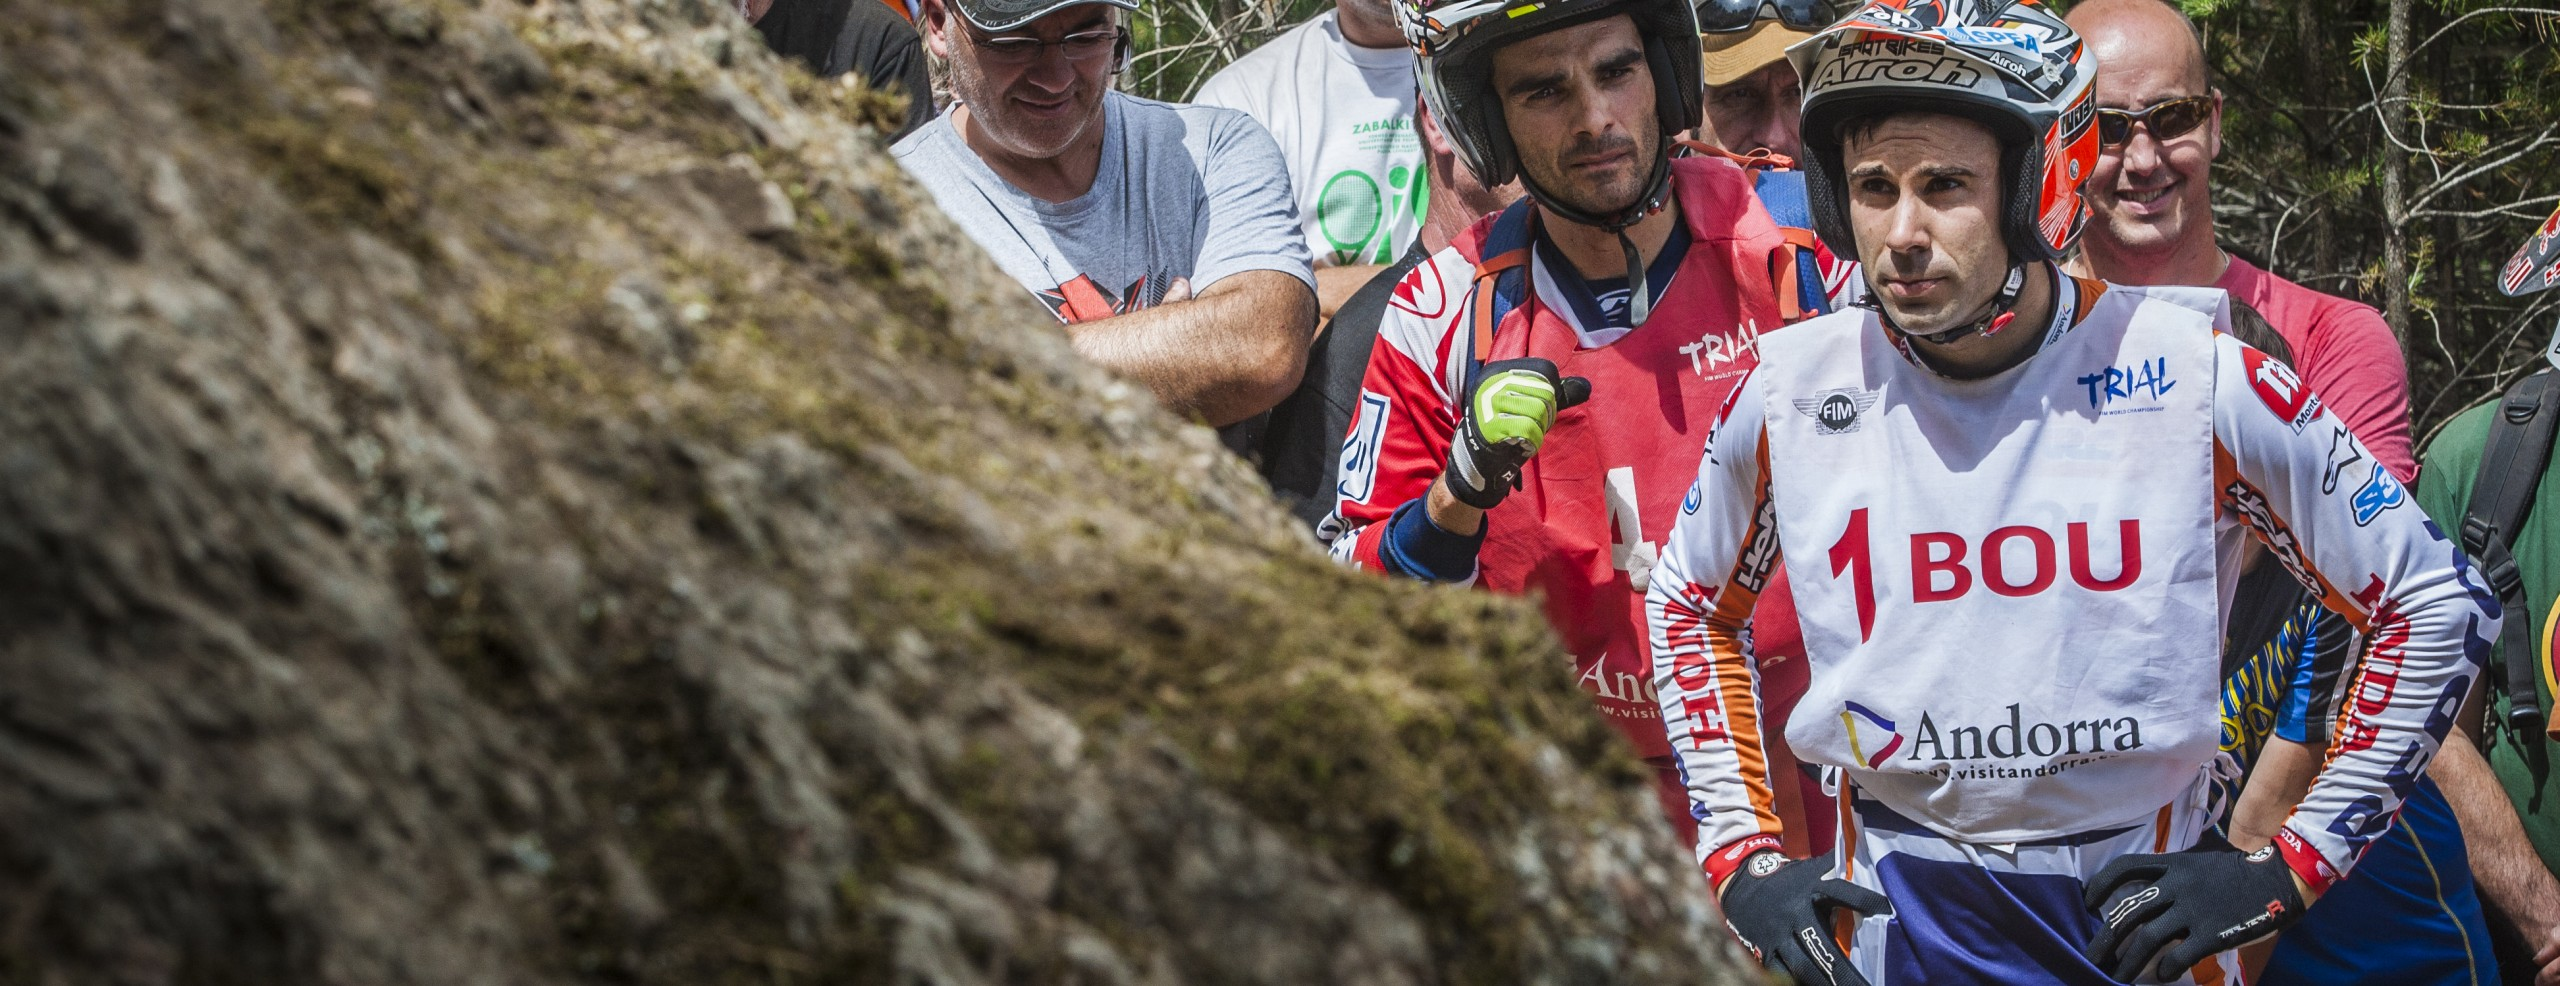 Toni Bou back to work and looking to seal a ninth world title